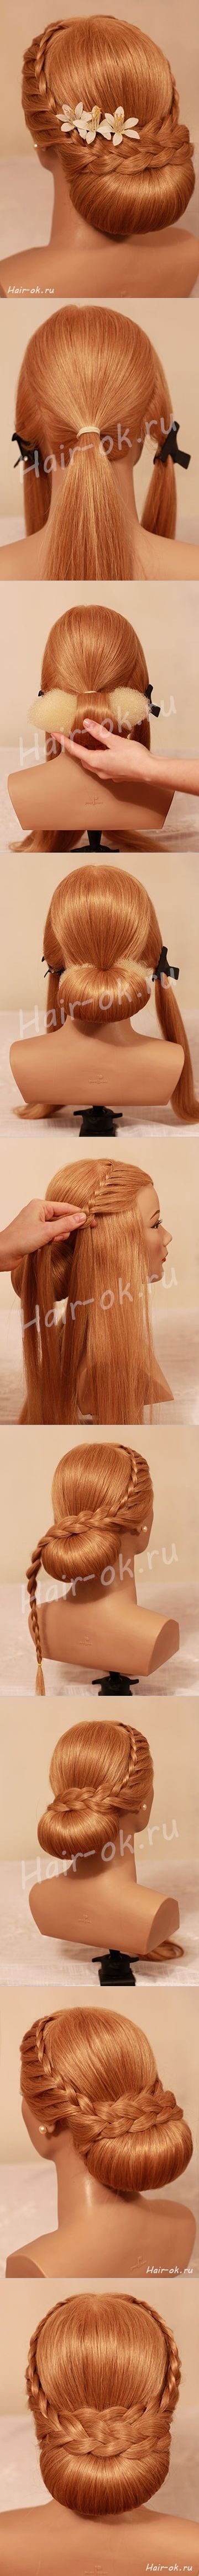 POST YOUR FREE LISTING TODAY! Hair News Network. All Hair. All The Time. http://www.HairNewsNetwork.com